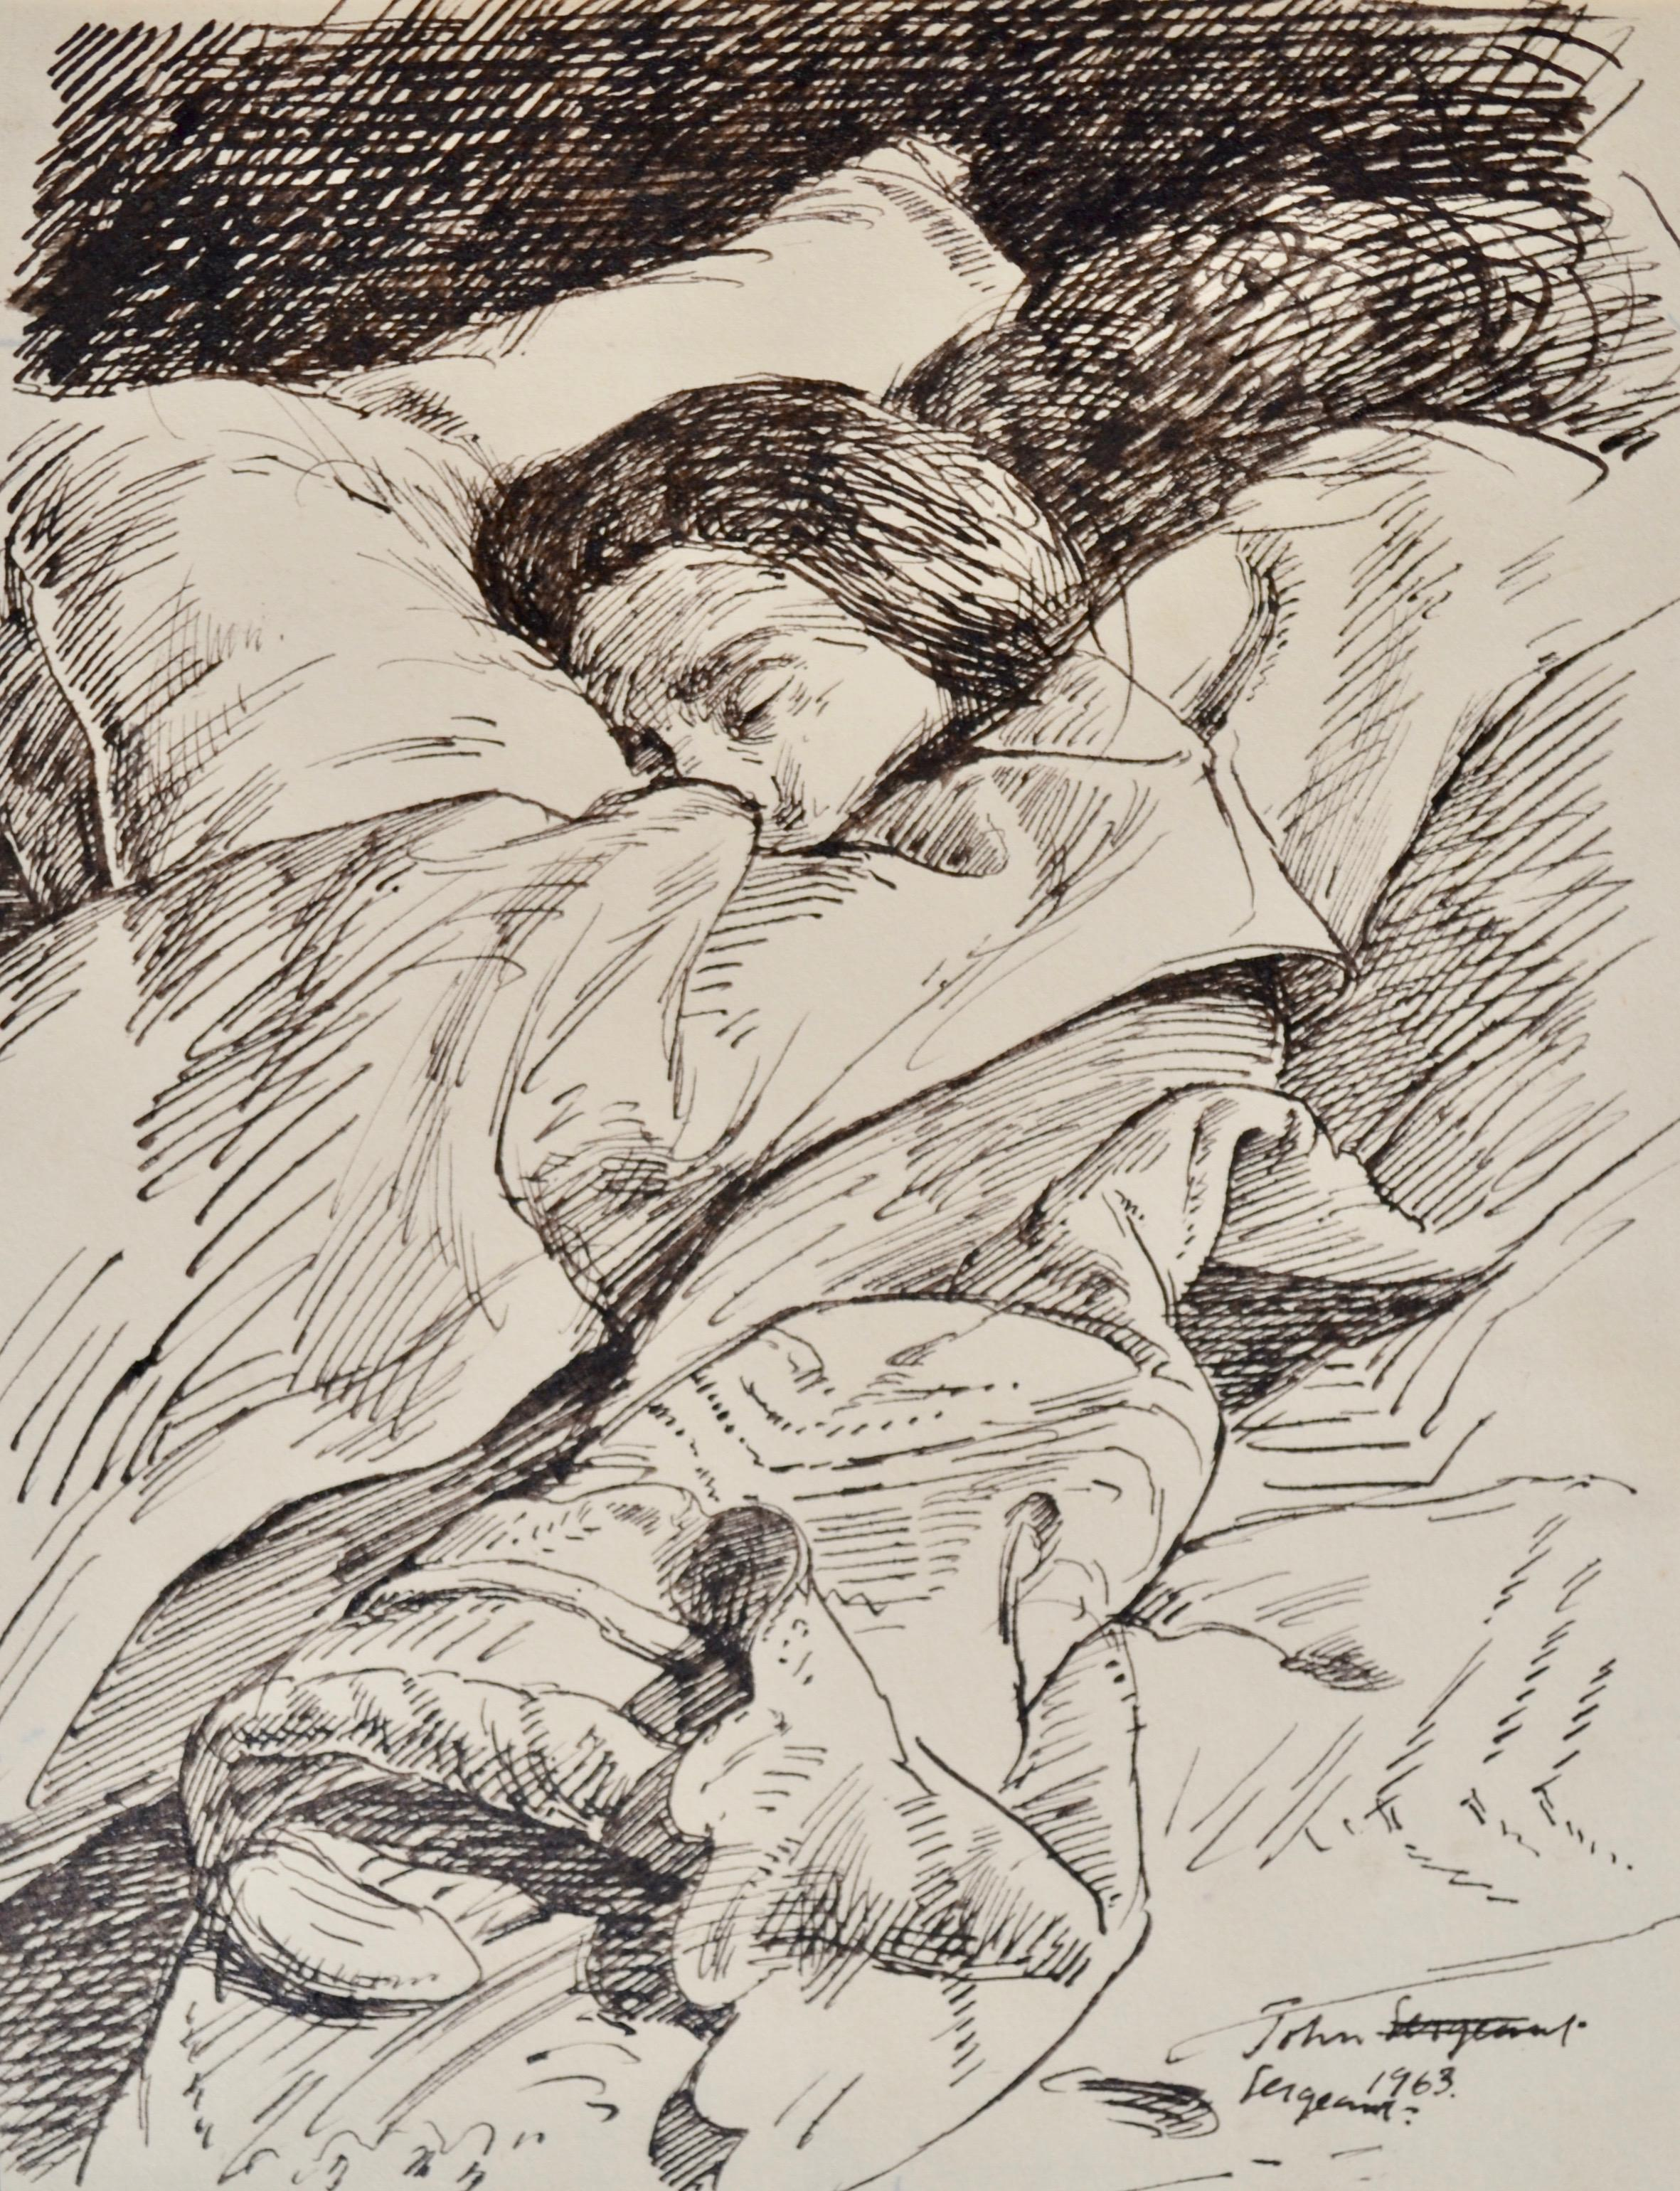 Sleeping - 20th Century British pen and ink drawing by John Sergeant